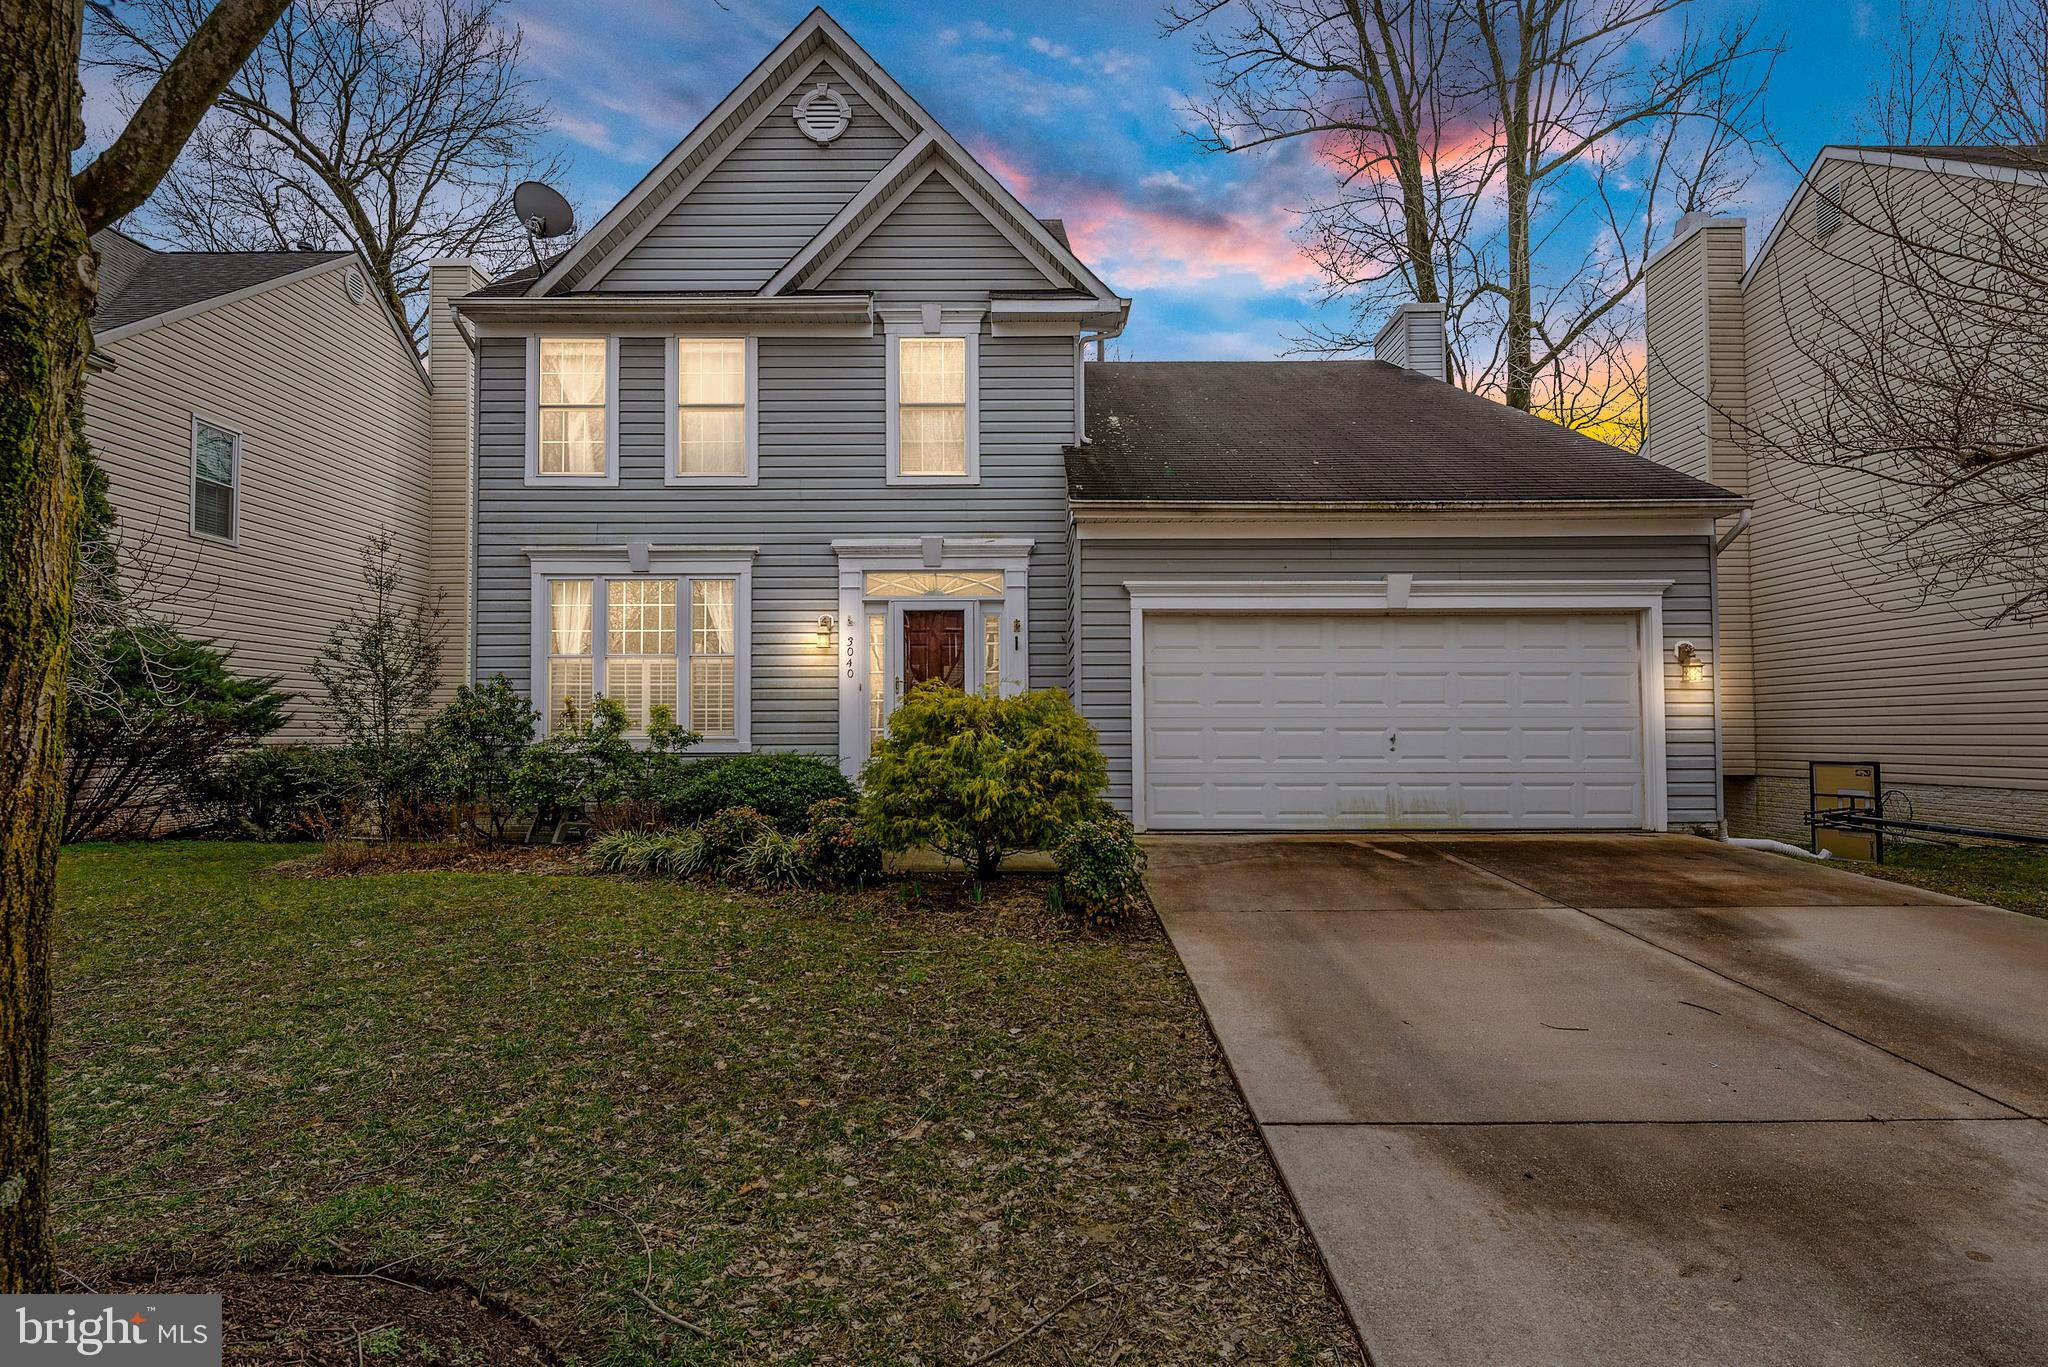 3040 OLD CHANNEL ROAD, LAUREL, MD 20724